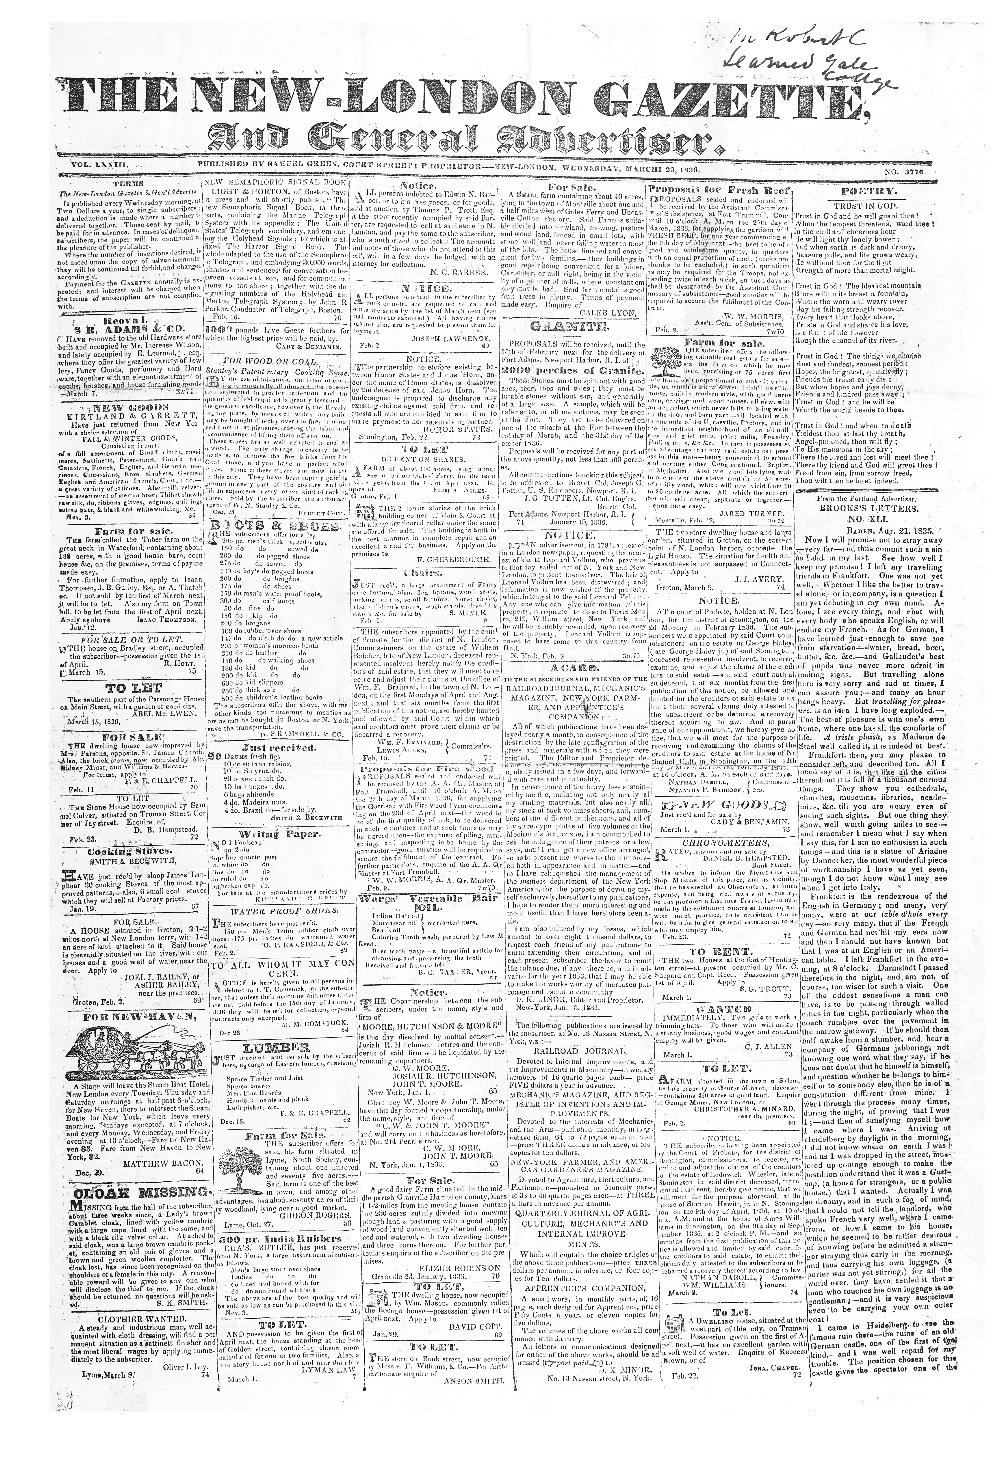 The New-London gazette, and general advertiser - page 1